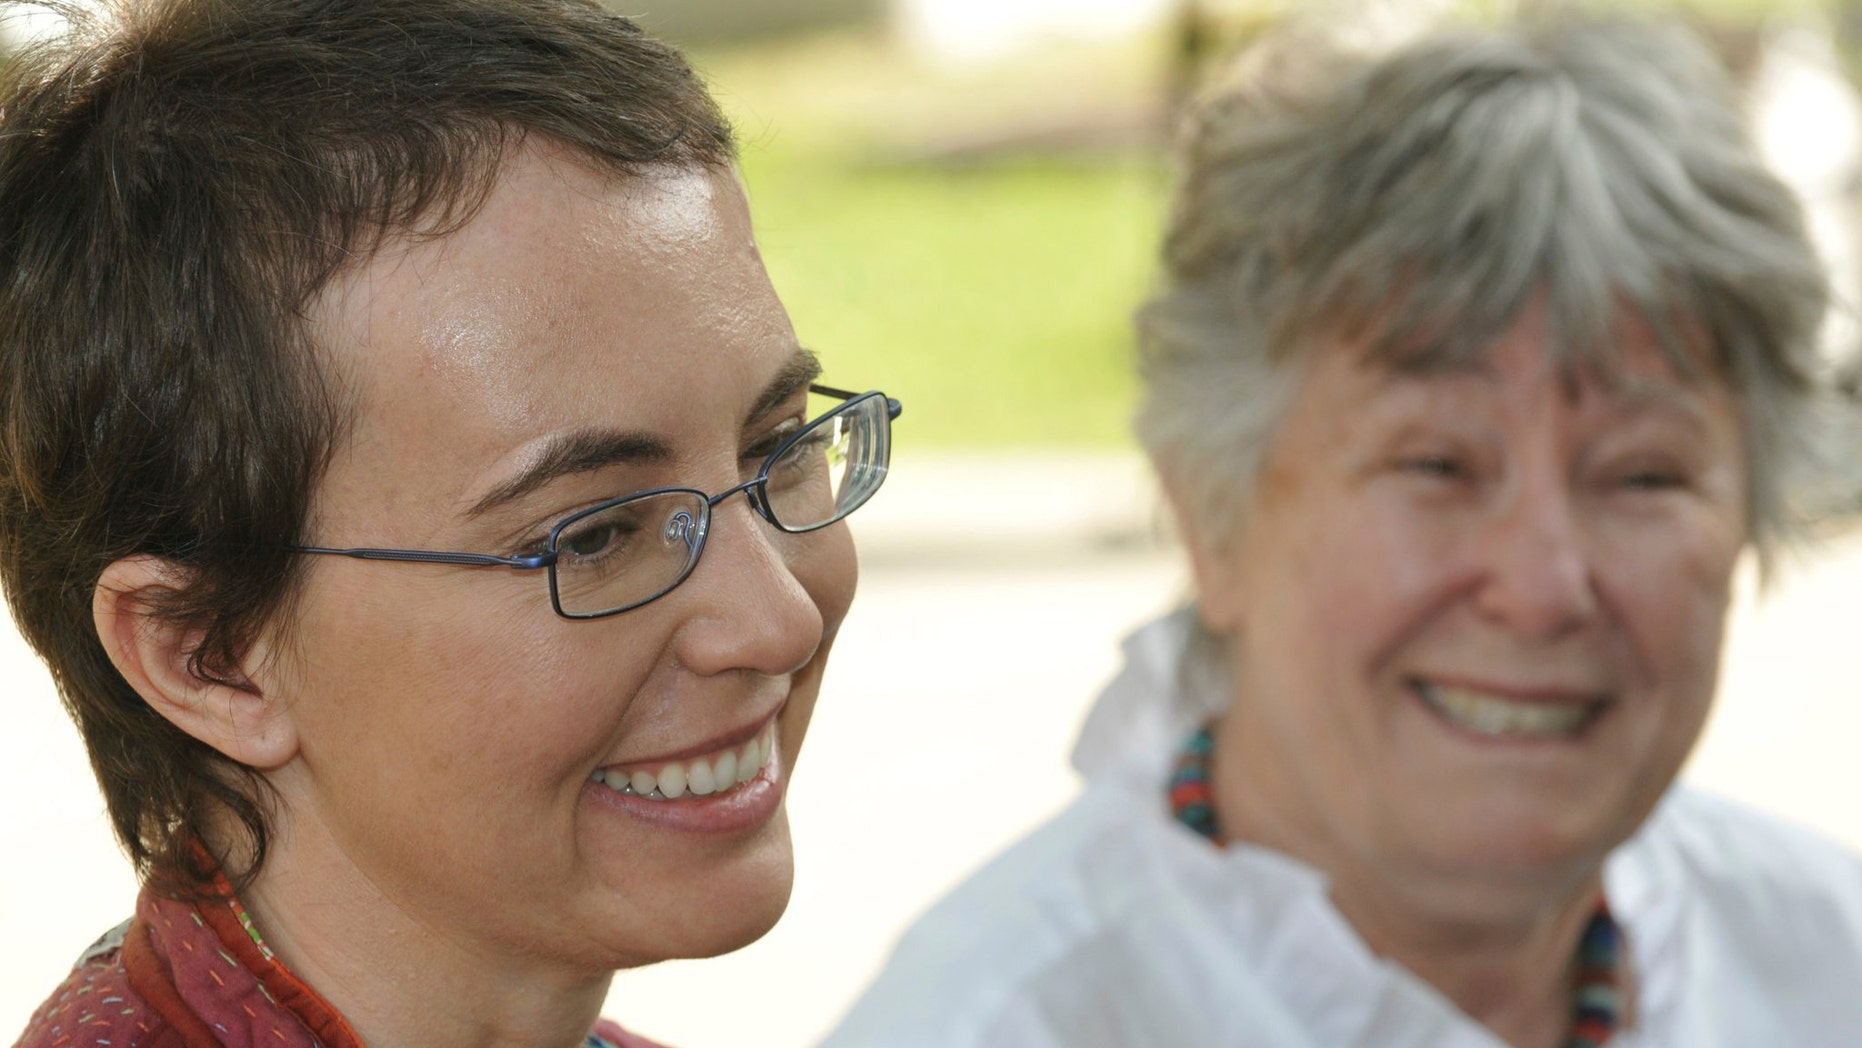 This, most recent photo of Rep. Gabrielle Giffords since she was shot, was posted to her public Facebook page by her aides.  The woman in the background is her mother Gloria Giffords. The photo was taken May 17, 2011 at TIRR Memorial Hermann Hospital, the day after the launch of Endeavour and the day before she had her cranioplasty.Giffords could be released from a rehabilitation hospital in Houston sometime this month, a top aide says, offering the latest indication that the Arizona congresswoman is making progress in recovering from a gunshot wound to the head. (AP/Giffords Campaign)